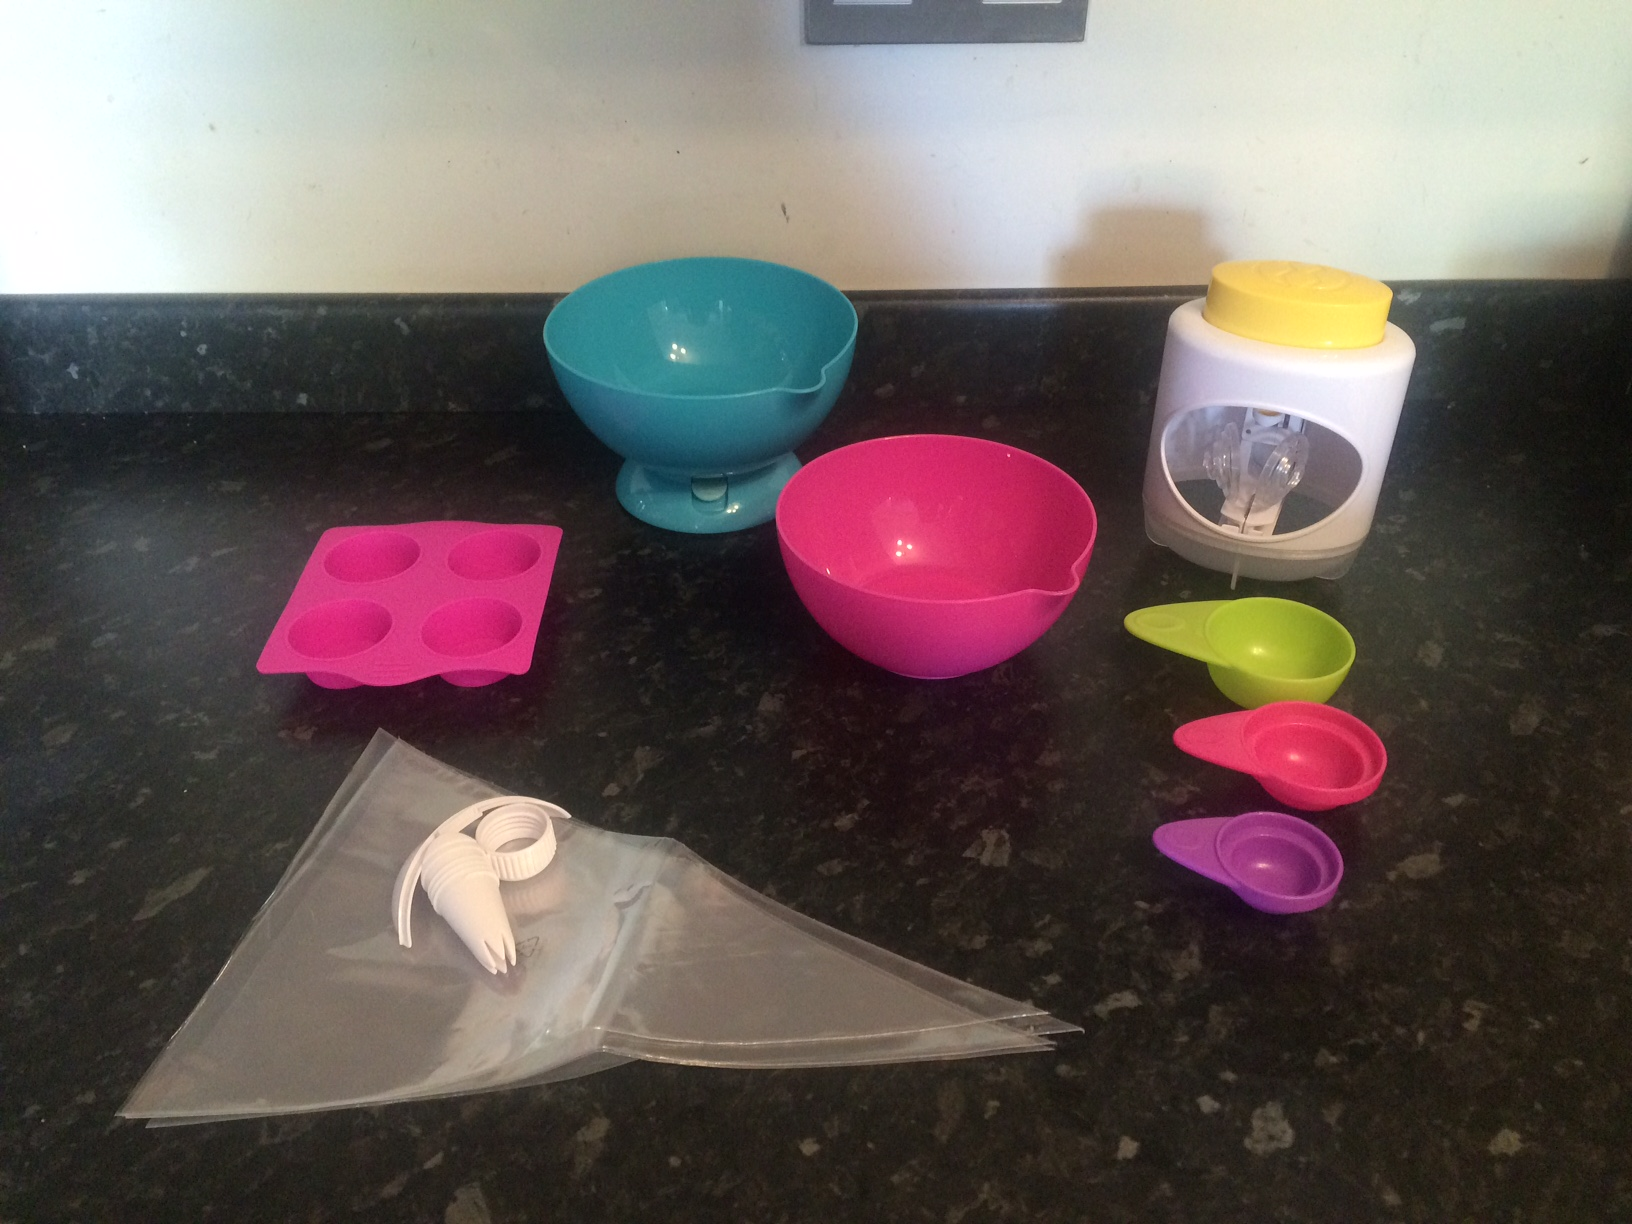 Real Baking - Great Baking Set product review